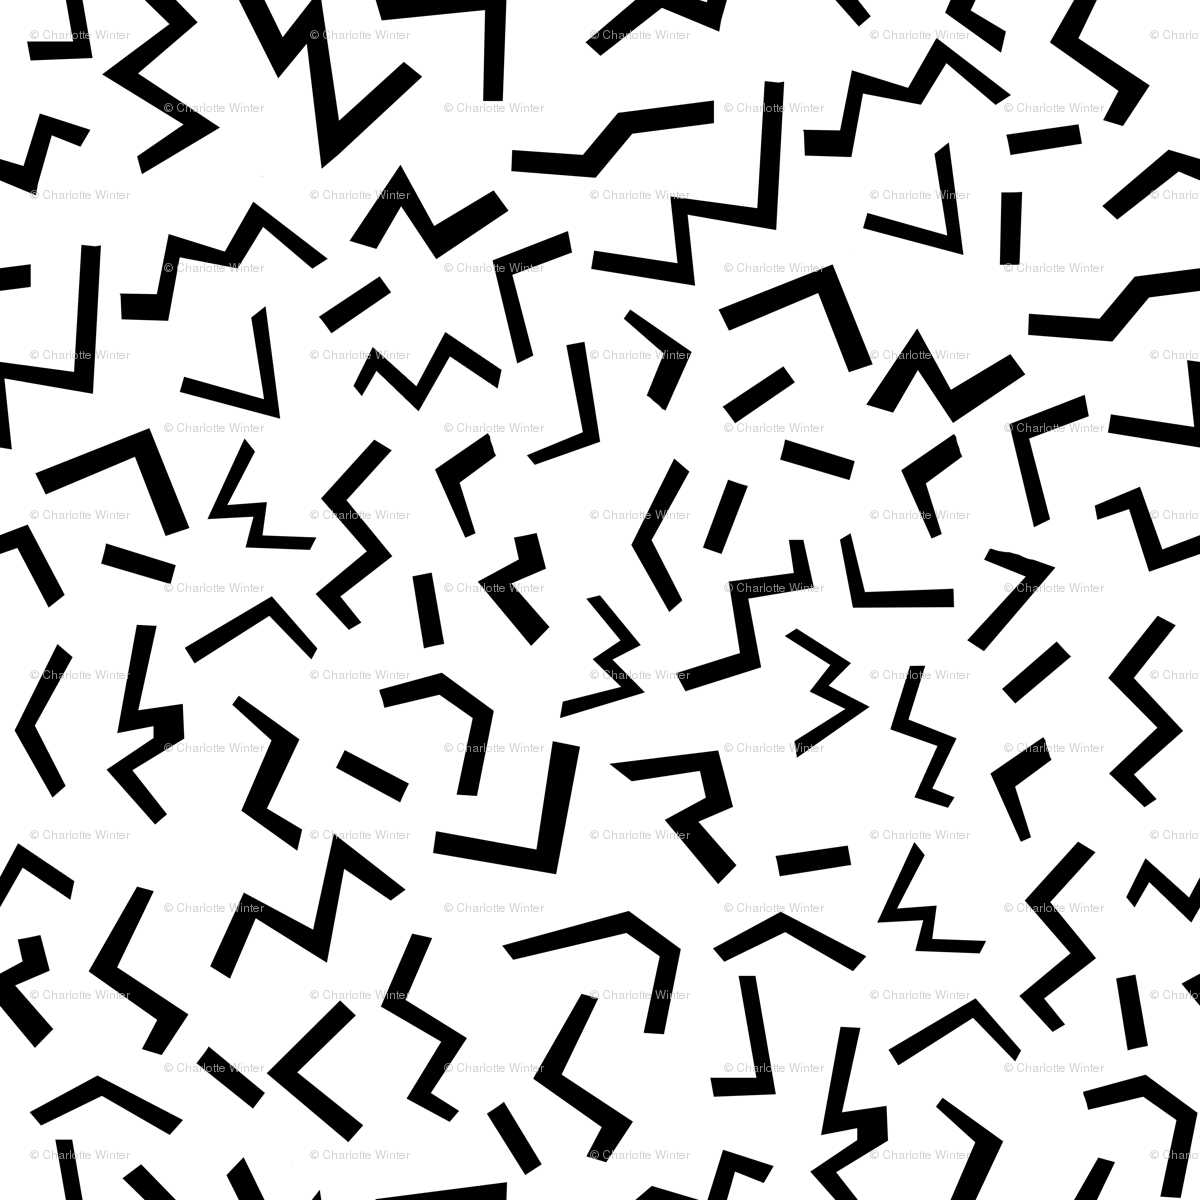 1200x1200 edgy shapes black and white minimal graphic kids trendy 80s 90s rad ...